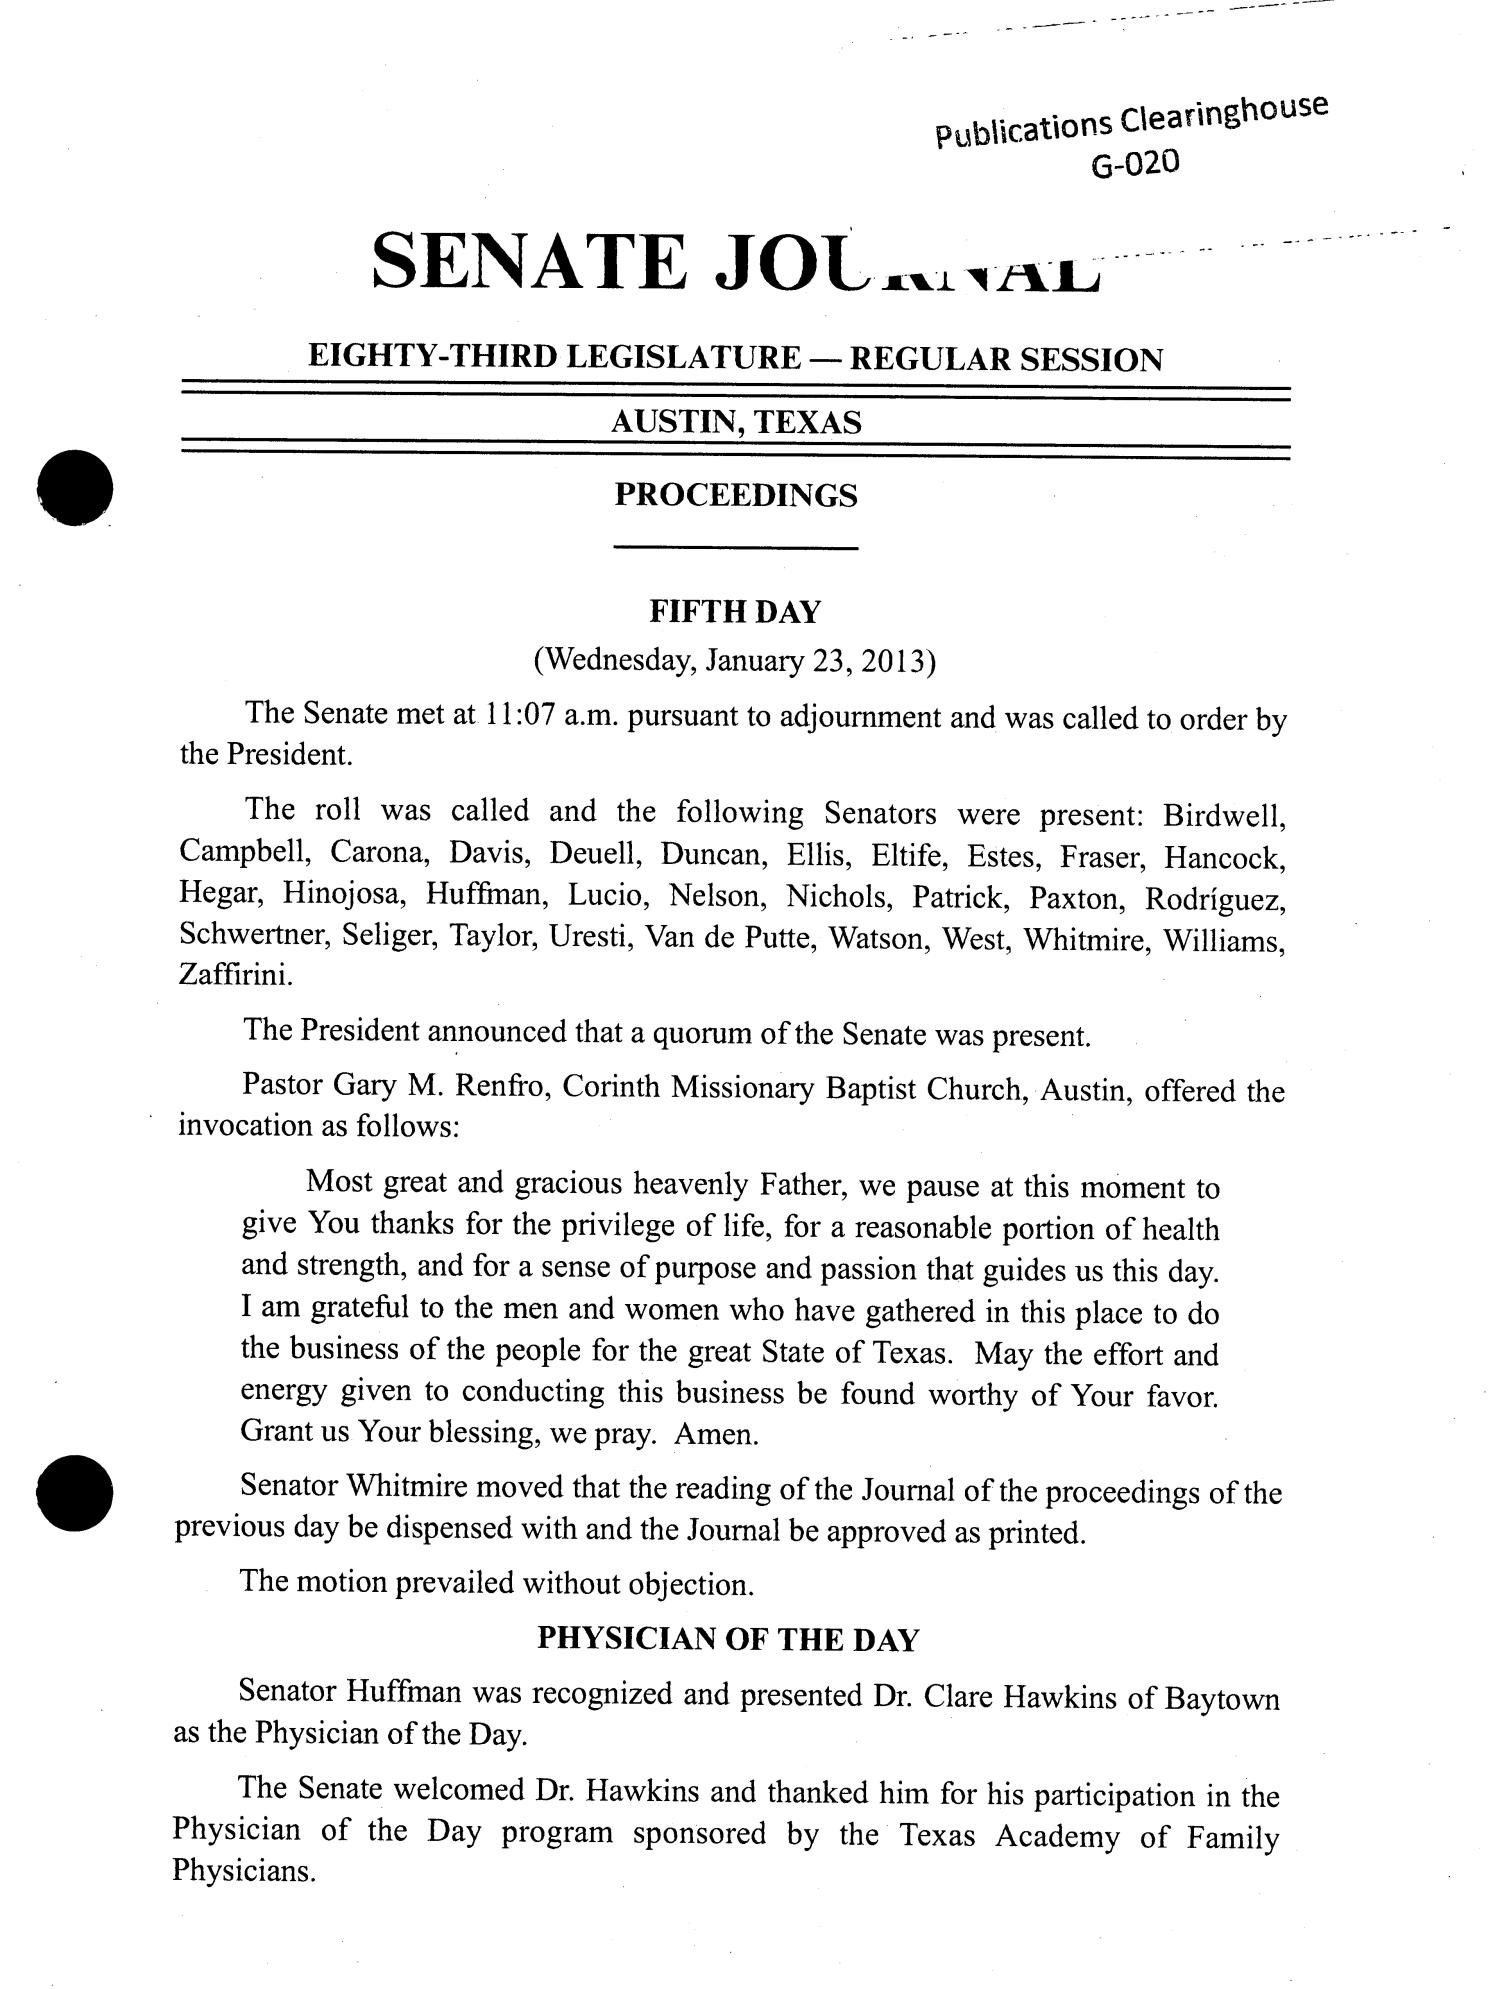 Journal of the Senate of Texas: 83rd Legislature, Regular Session, Wednesday, January 23, 2013                                                                                                      49